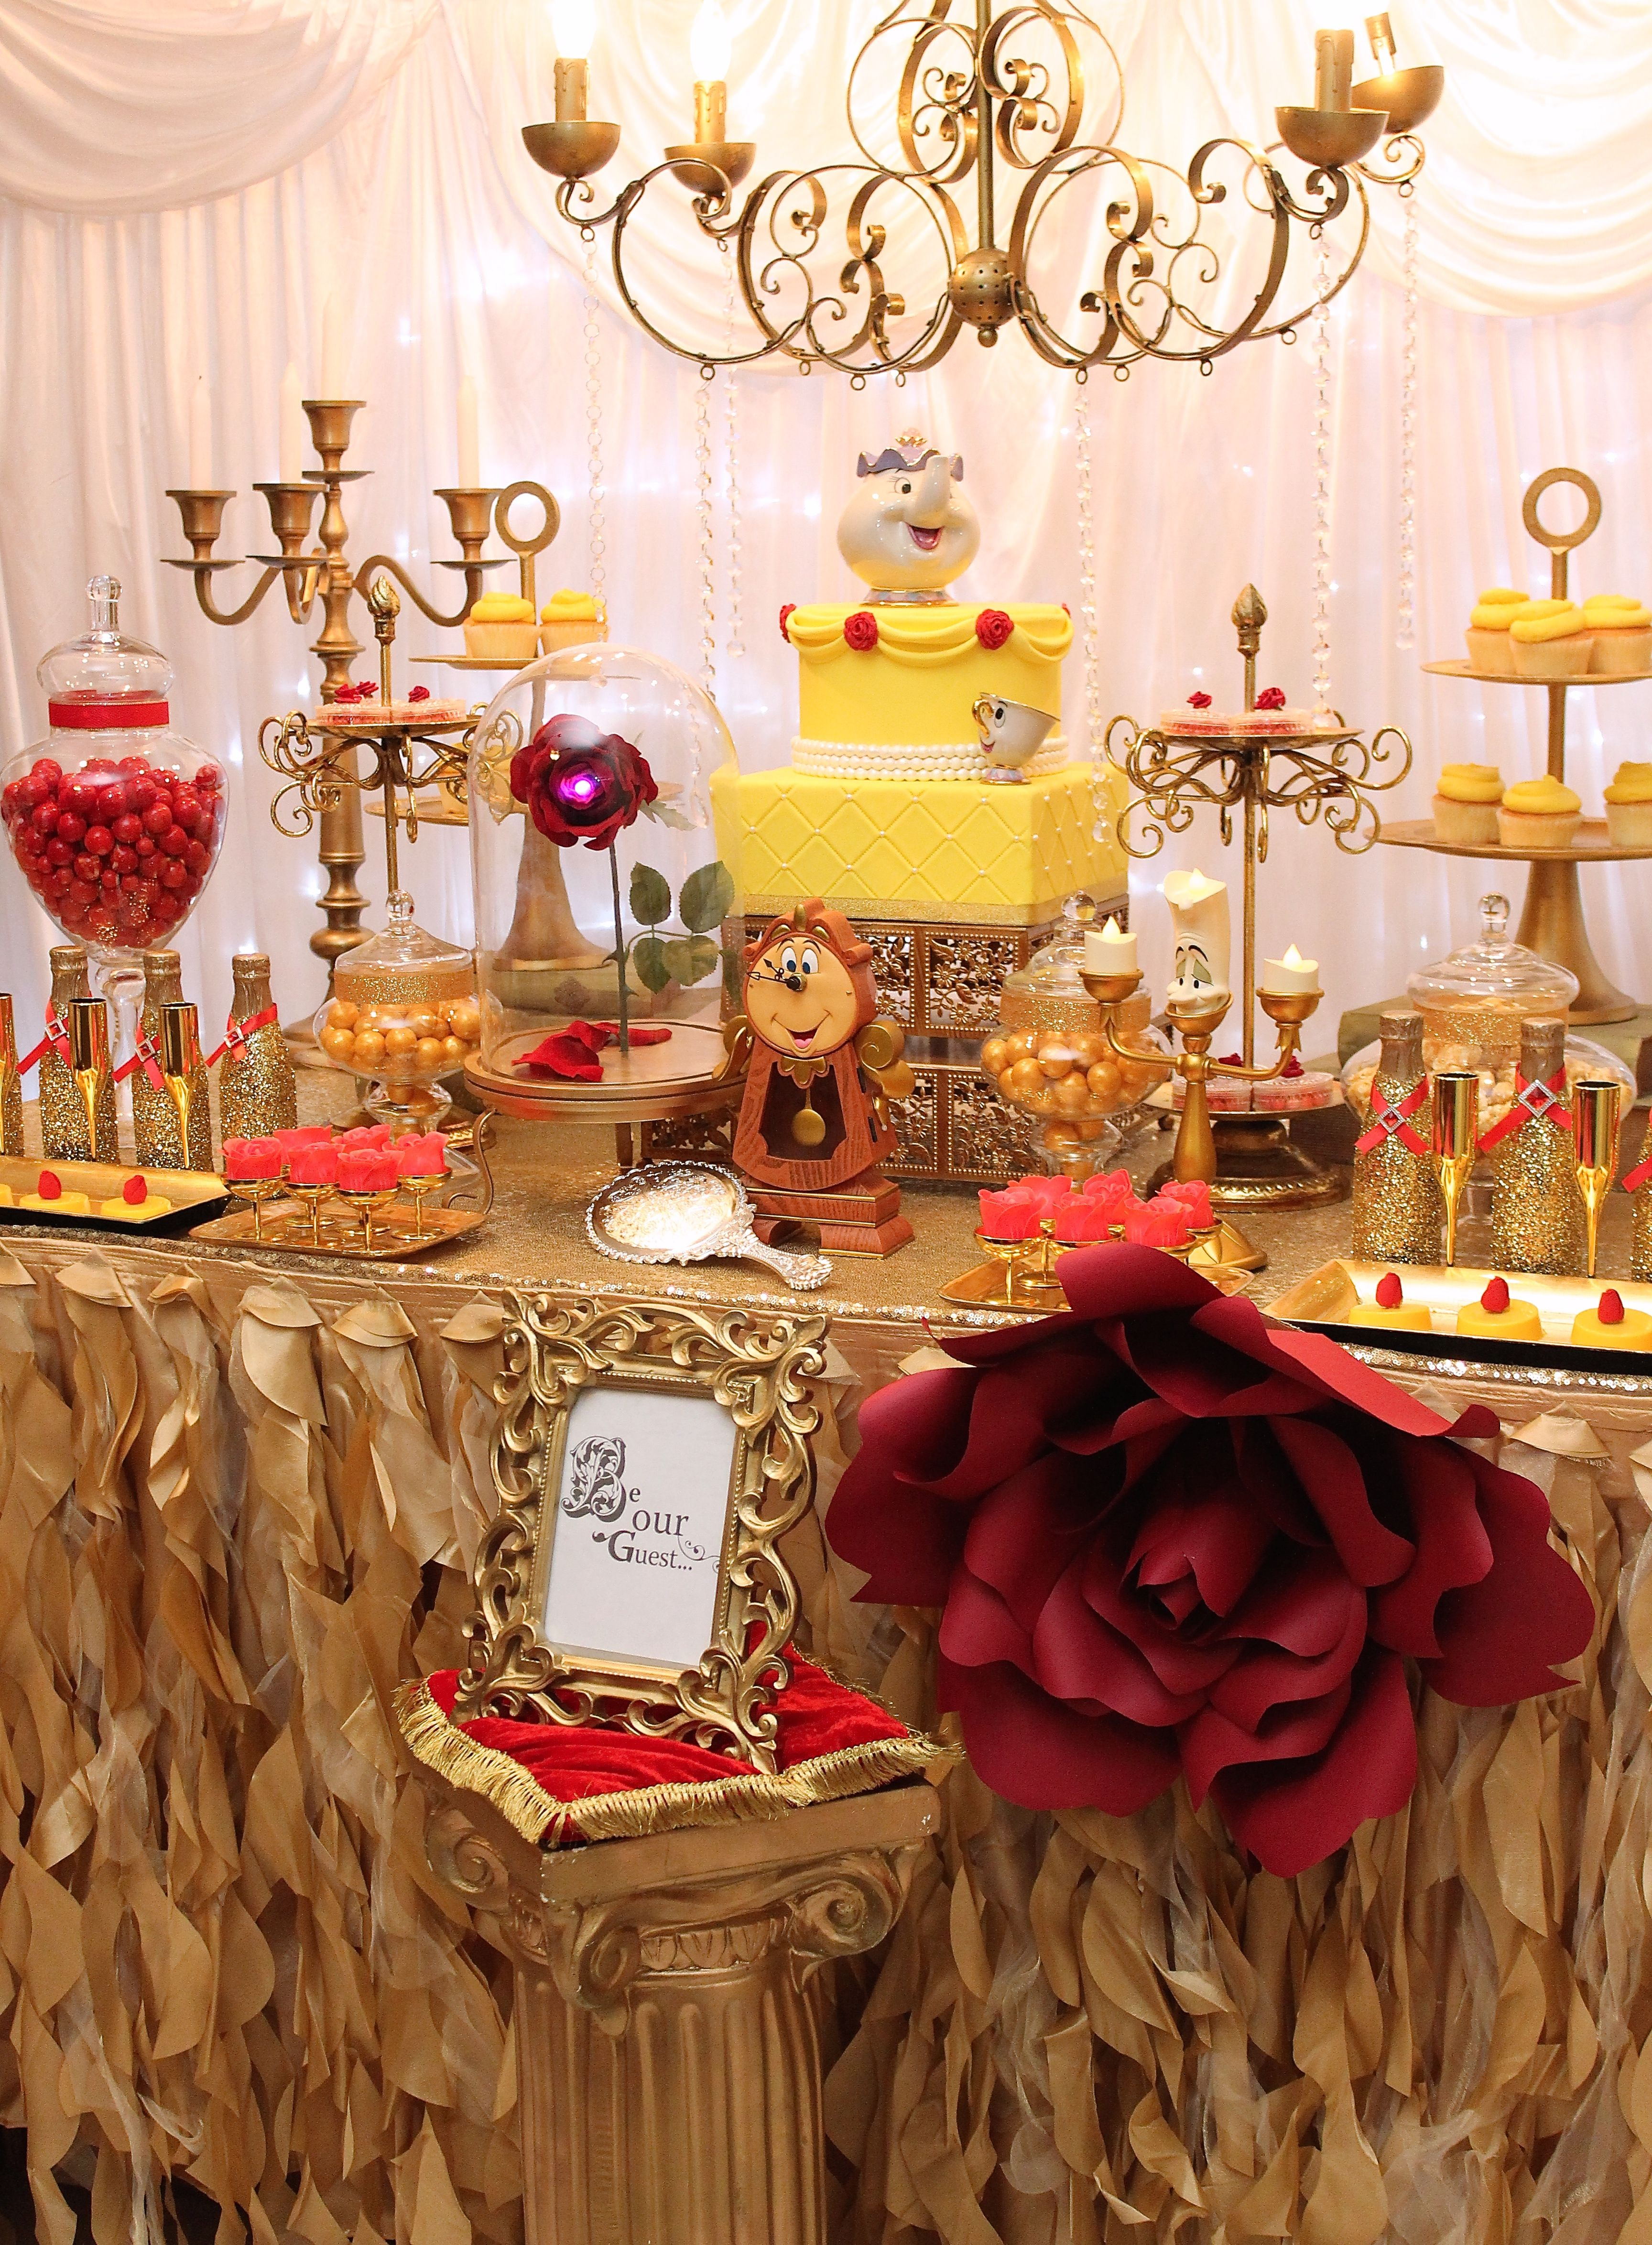 Beauty and the beast desserts table paper flowers pinterest beauty and the beast desserts table izmirmasajfo Choice Image